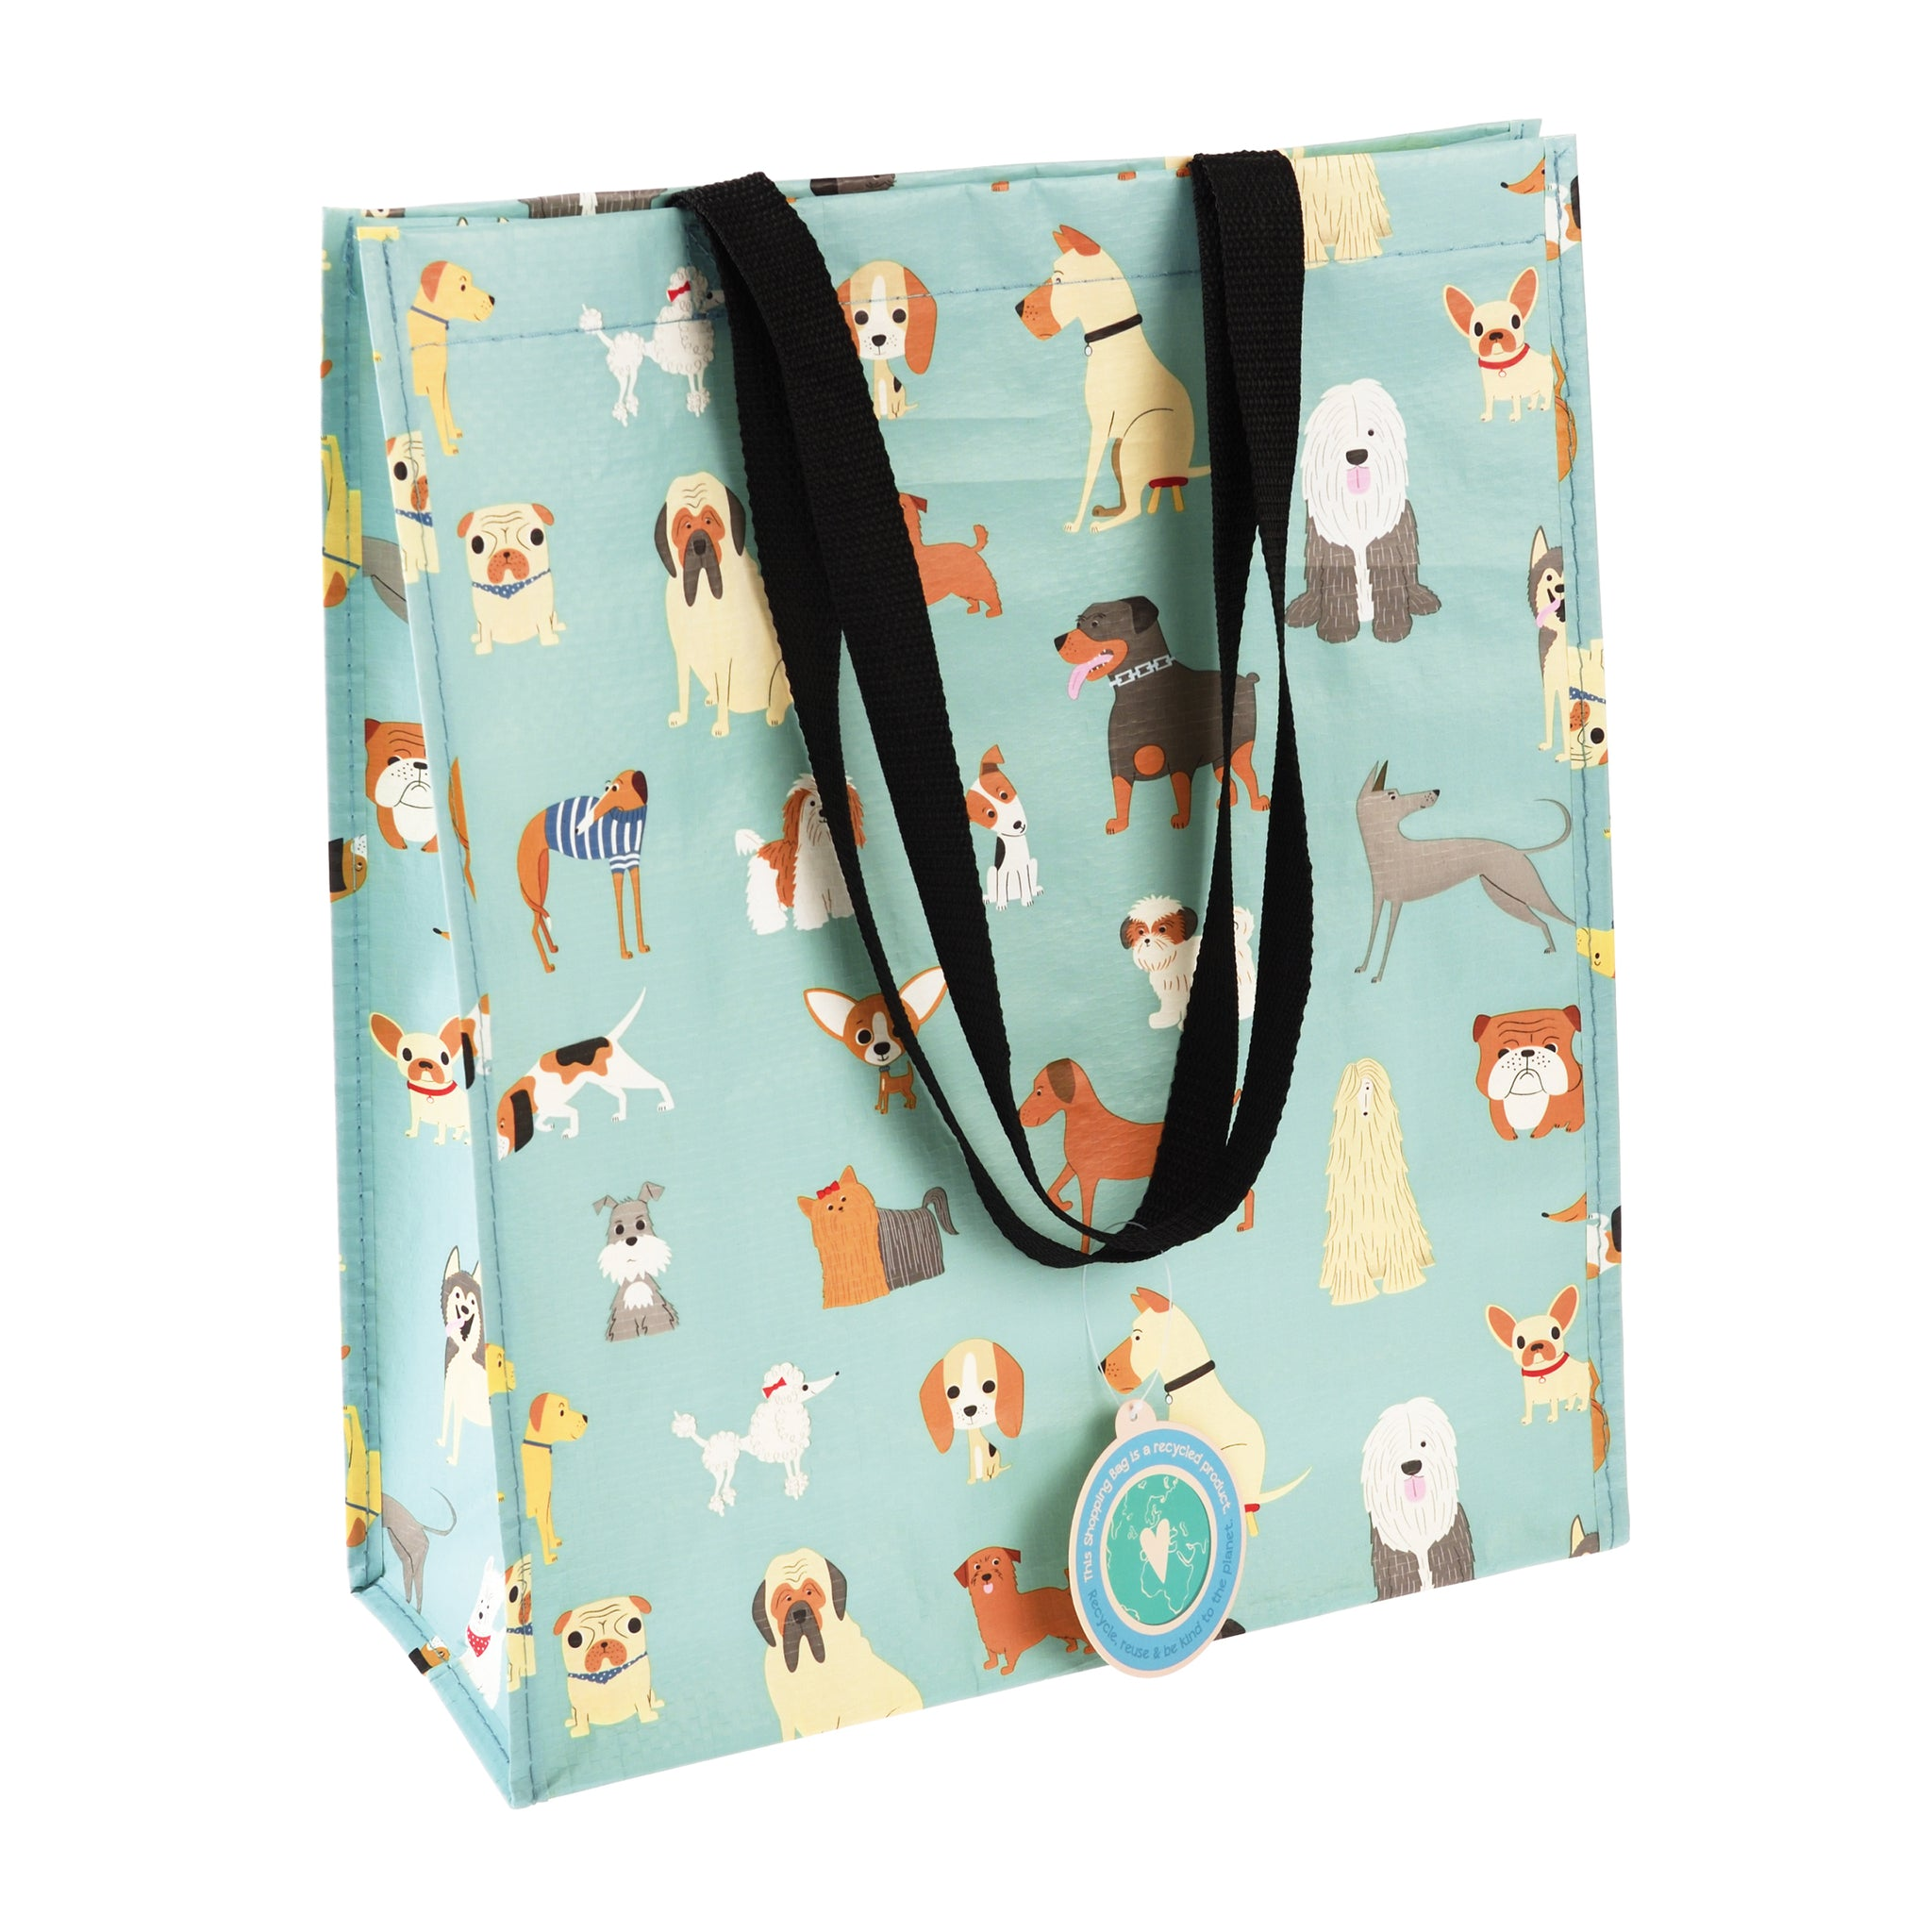 Best In Show shopping bag